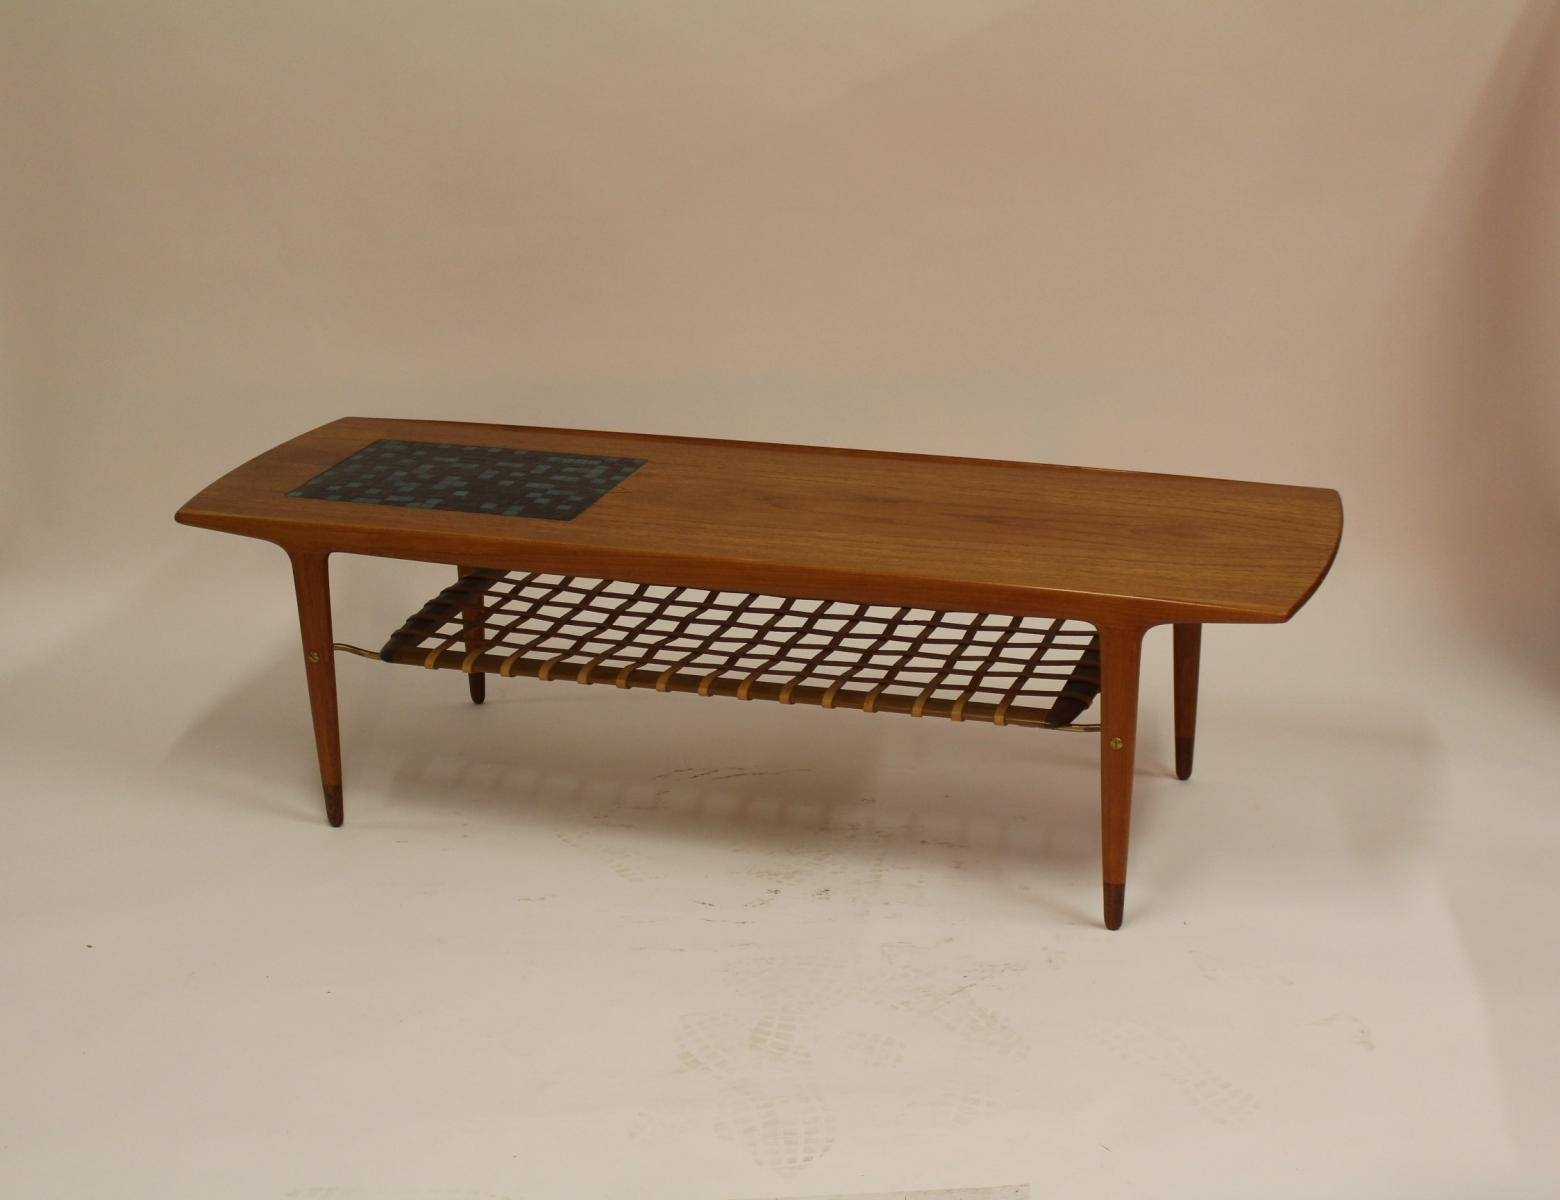 Vintage Danish Teak Coffee Table With Ceramic Tiles And Leather within Coffee Tables With Magazine Rack (Image 28 of 30)